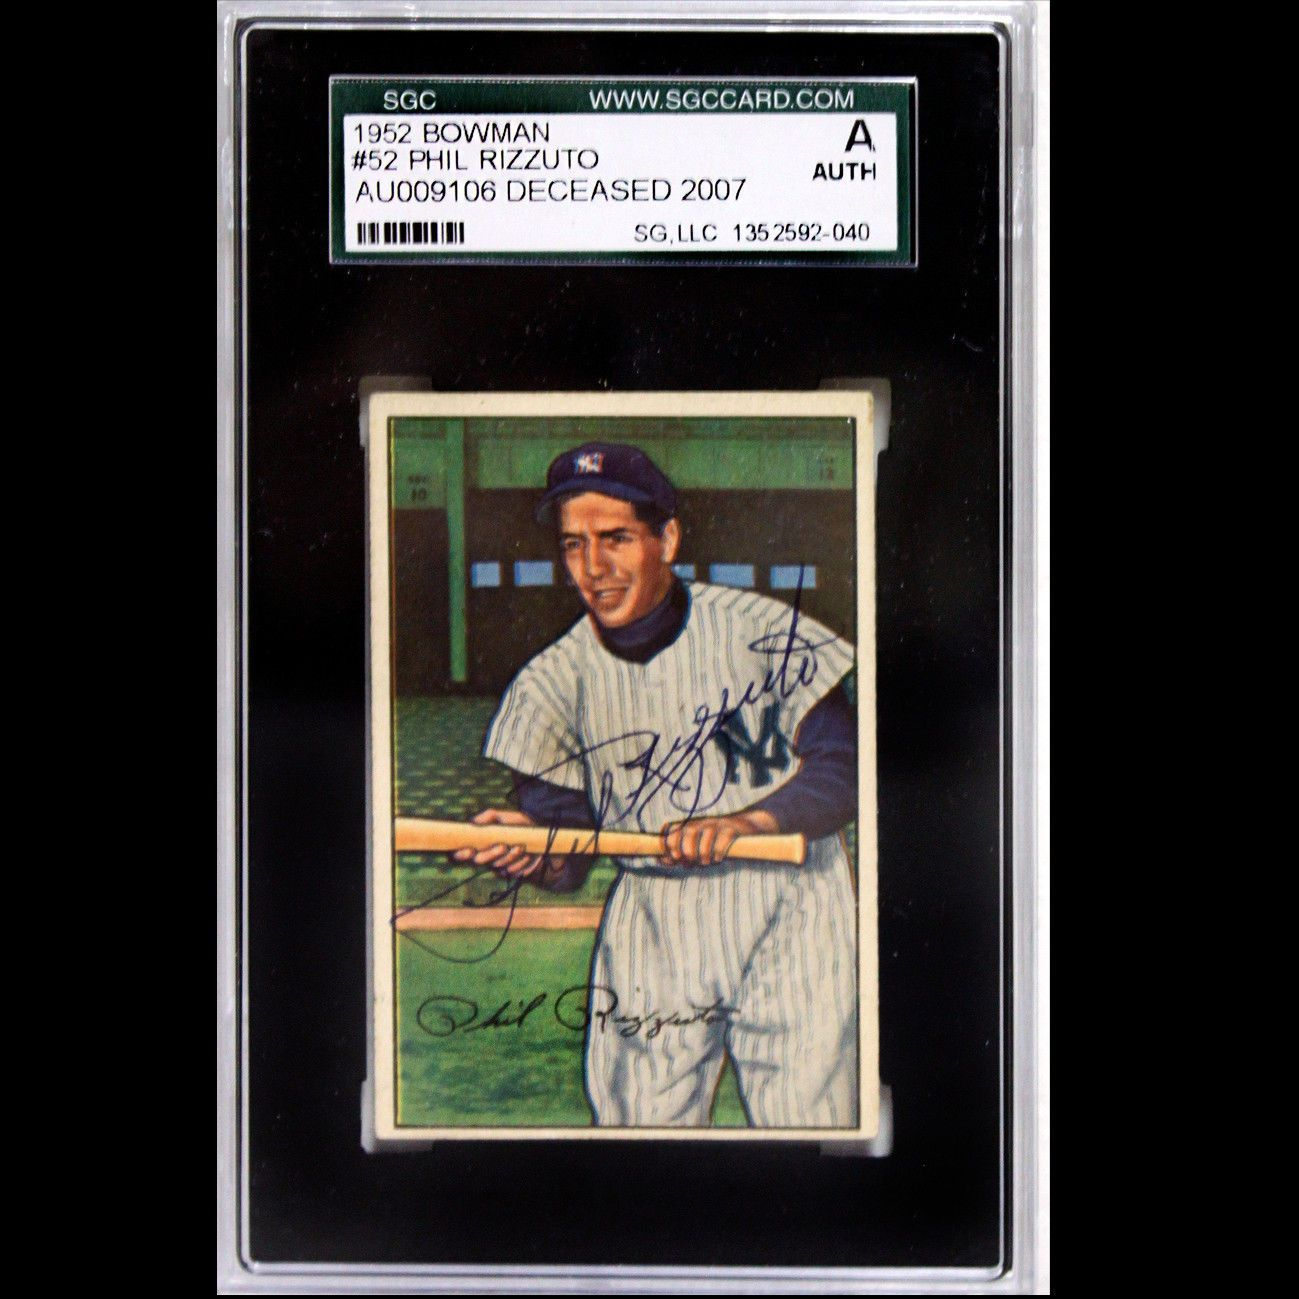 1952 Bowman 52 Phil Rizzuto Psadna Signed Autographed Auto 1352592 040 Phil Rizzuto Baseball Cards Baseball Signs